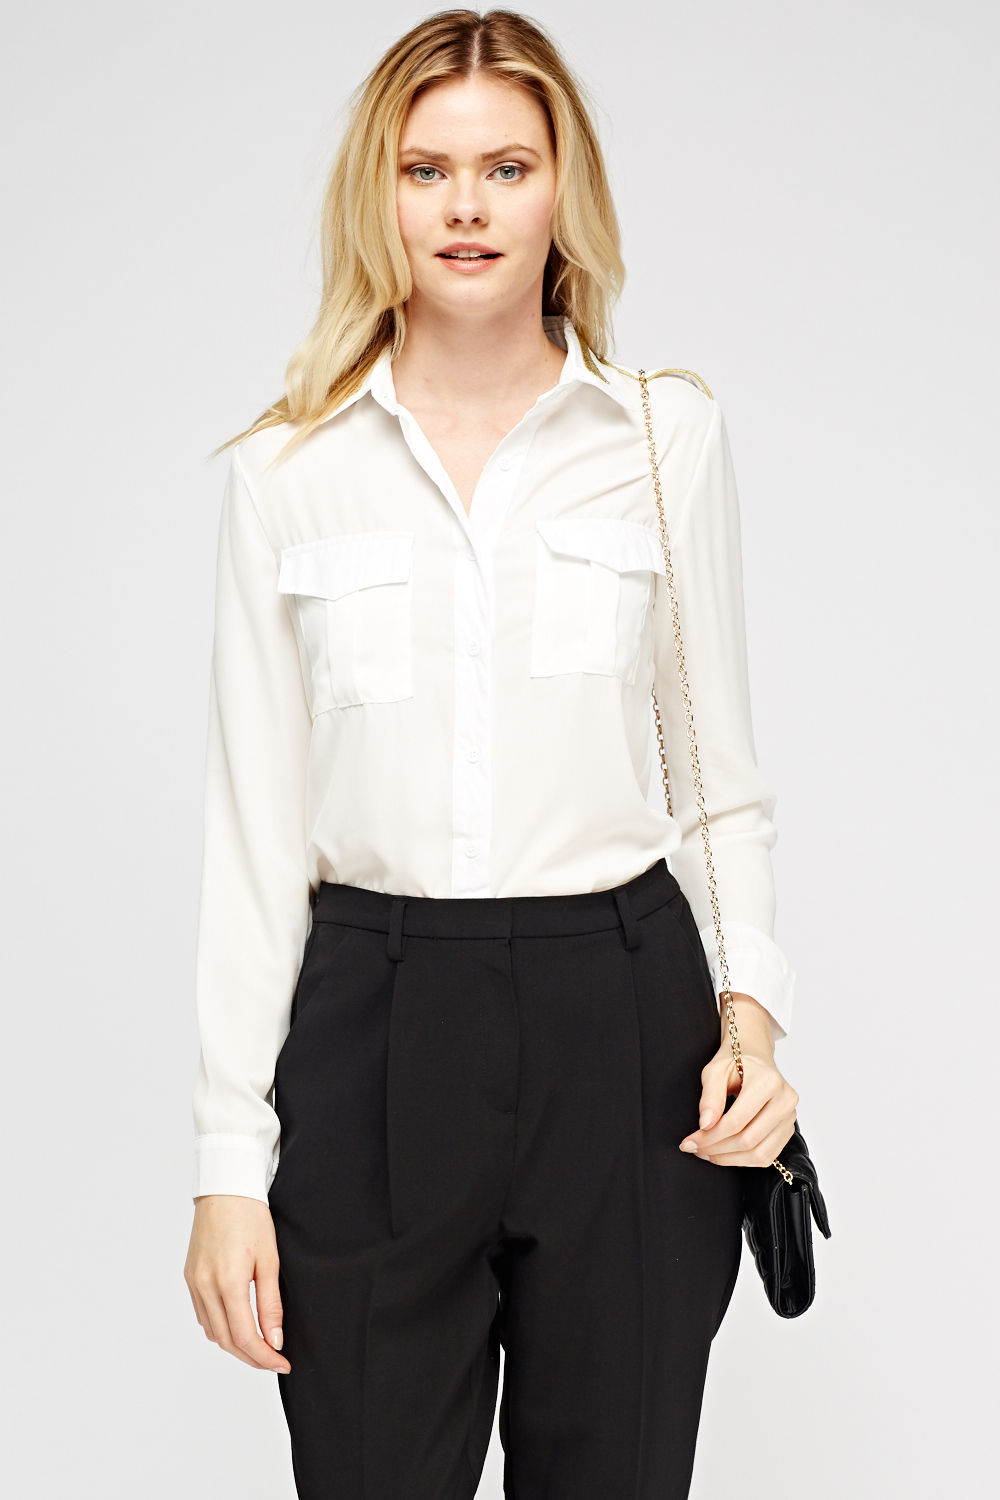 73890c12 Twin Pocket Sheer Blouse - Just £5